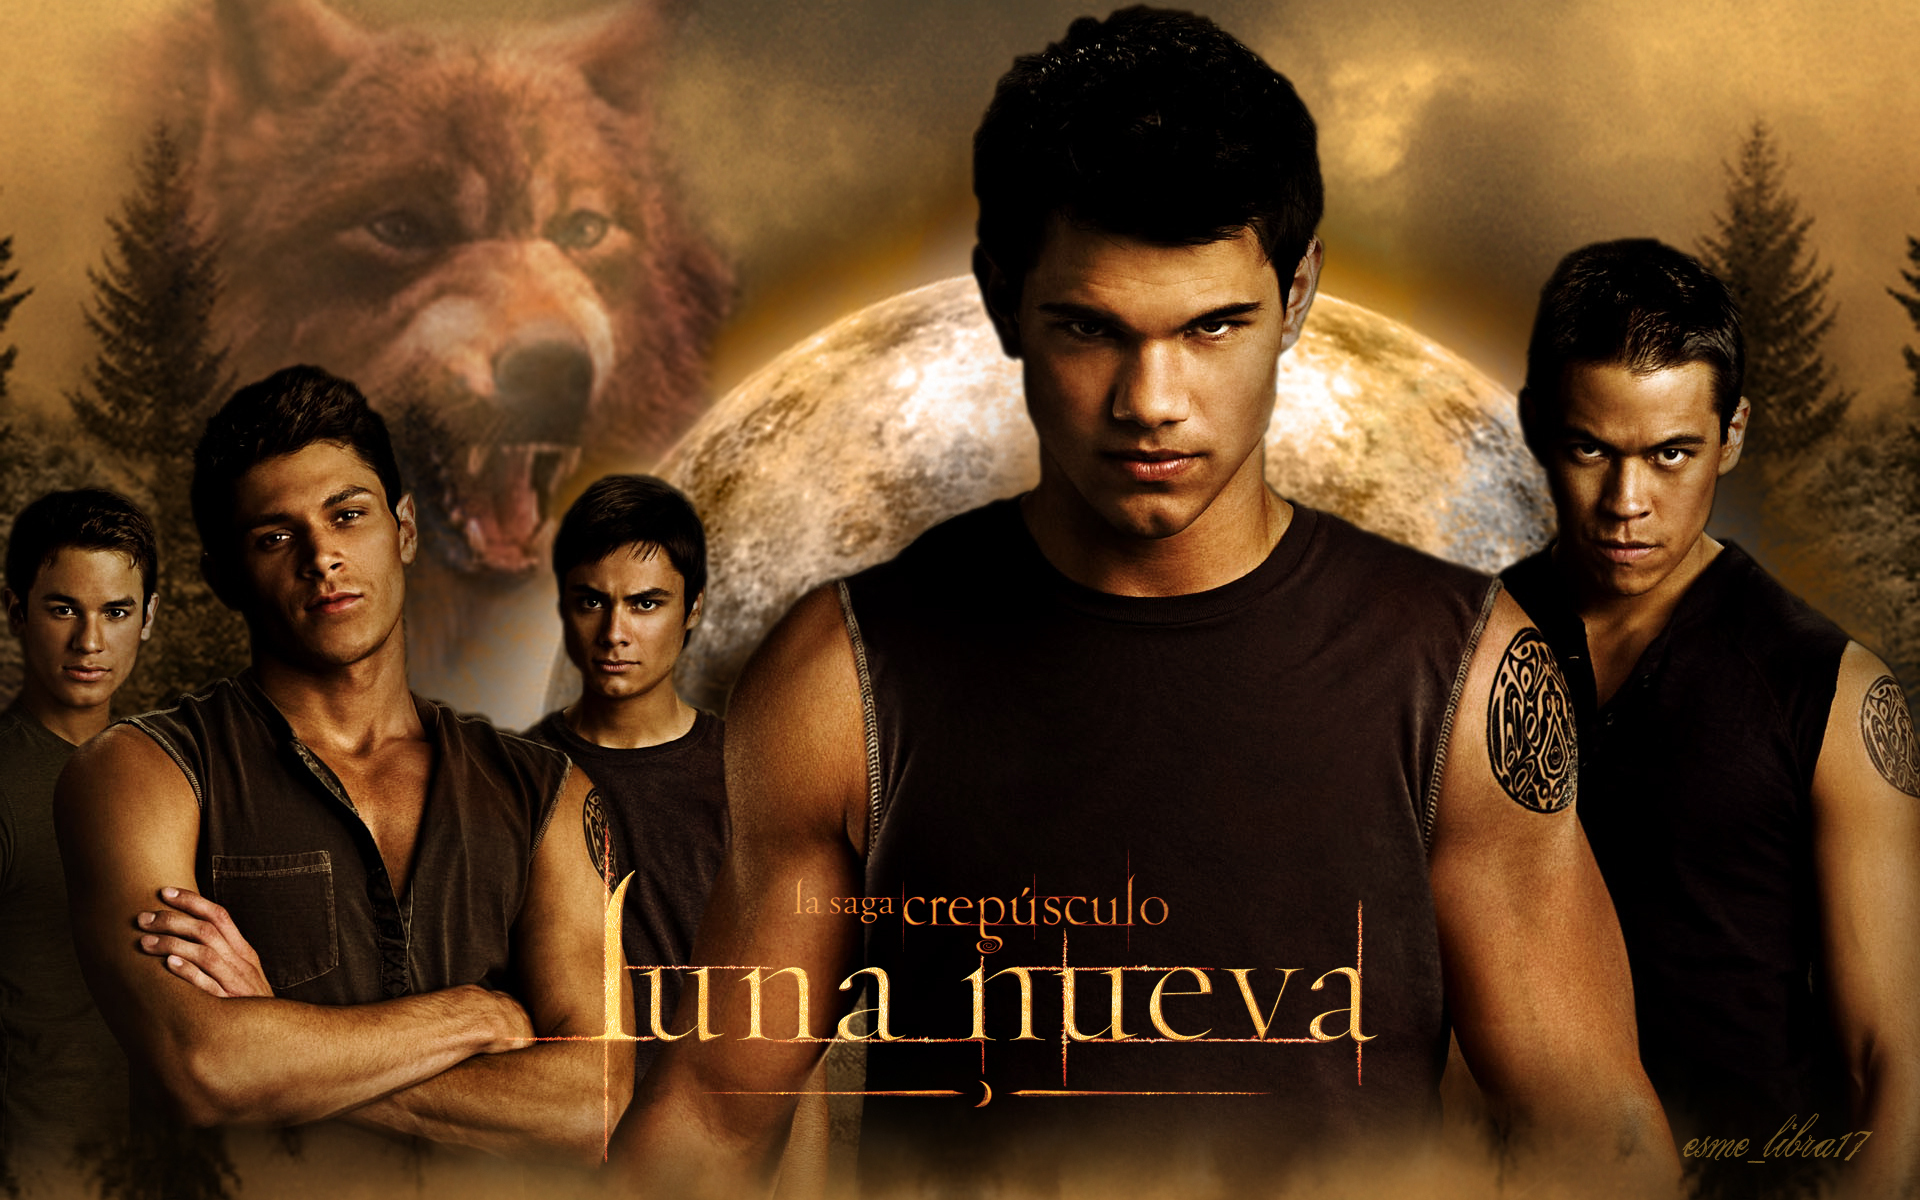 luna nueva - wallpaper made my me - the werewolves - twilight-series wallpaper